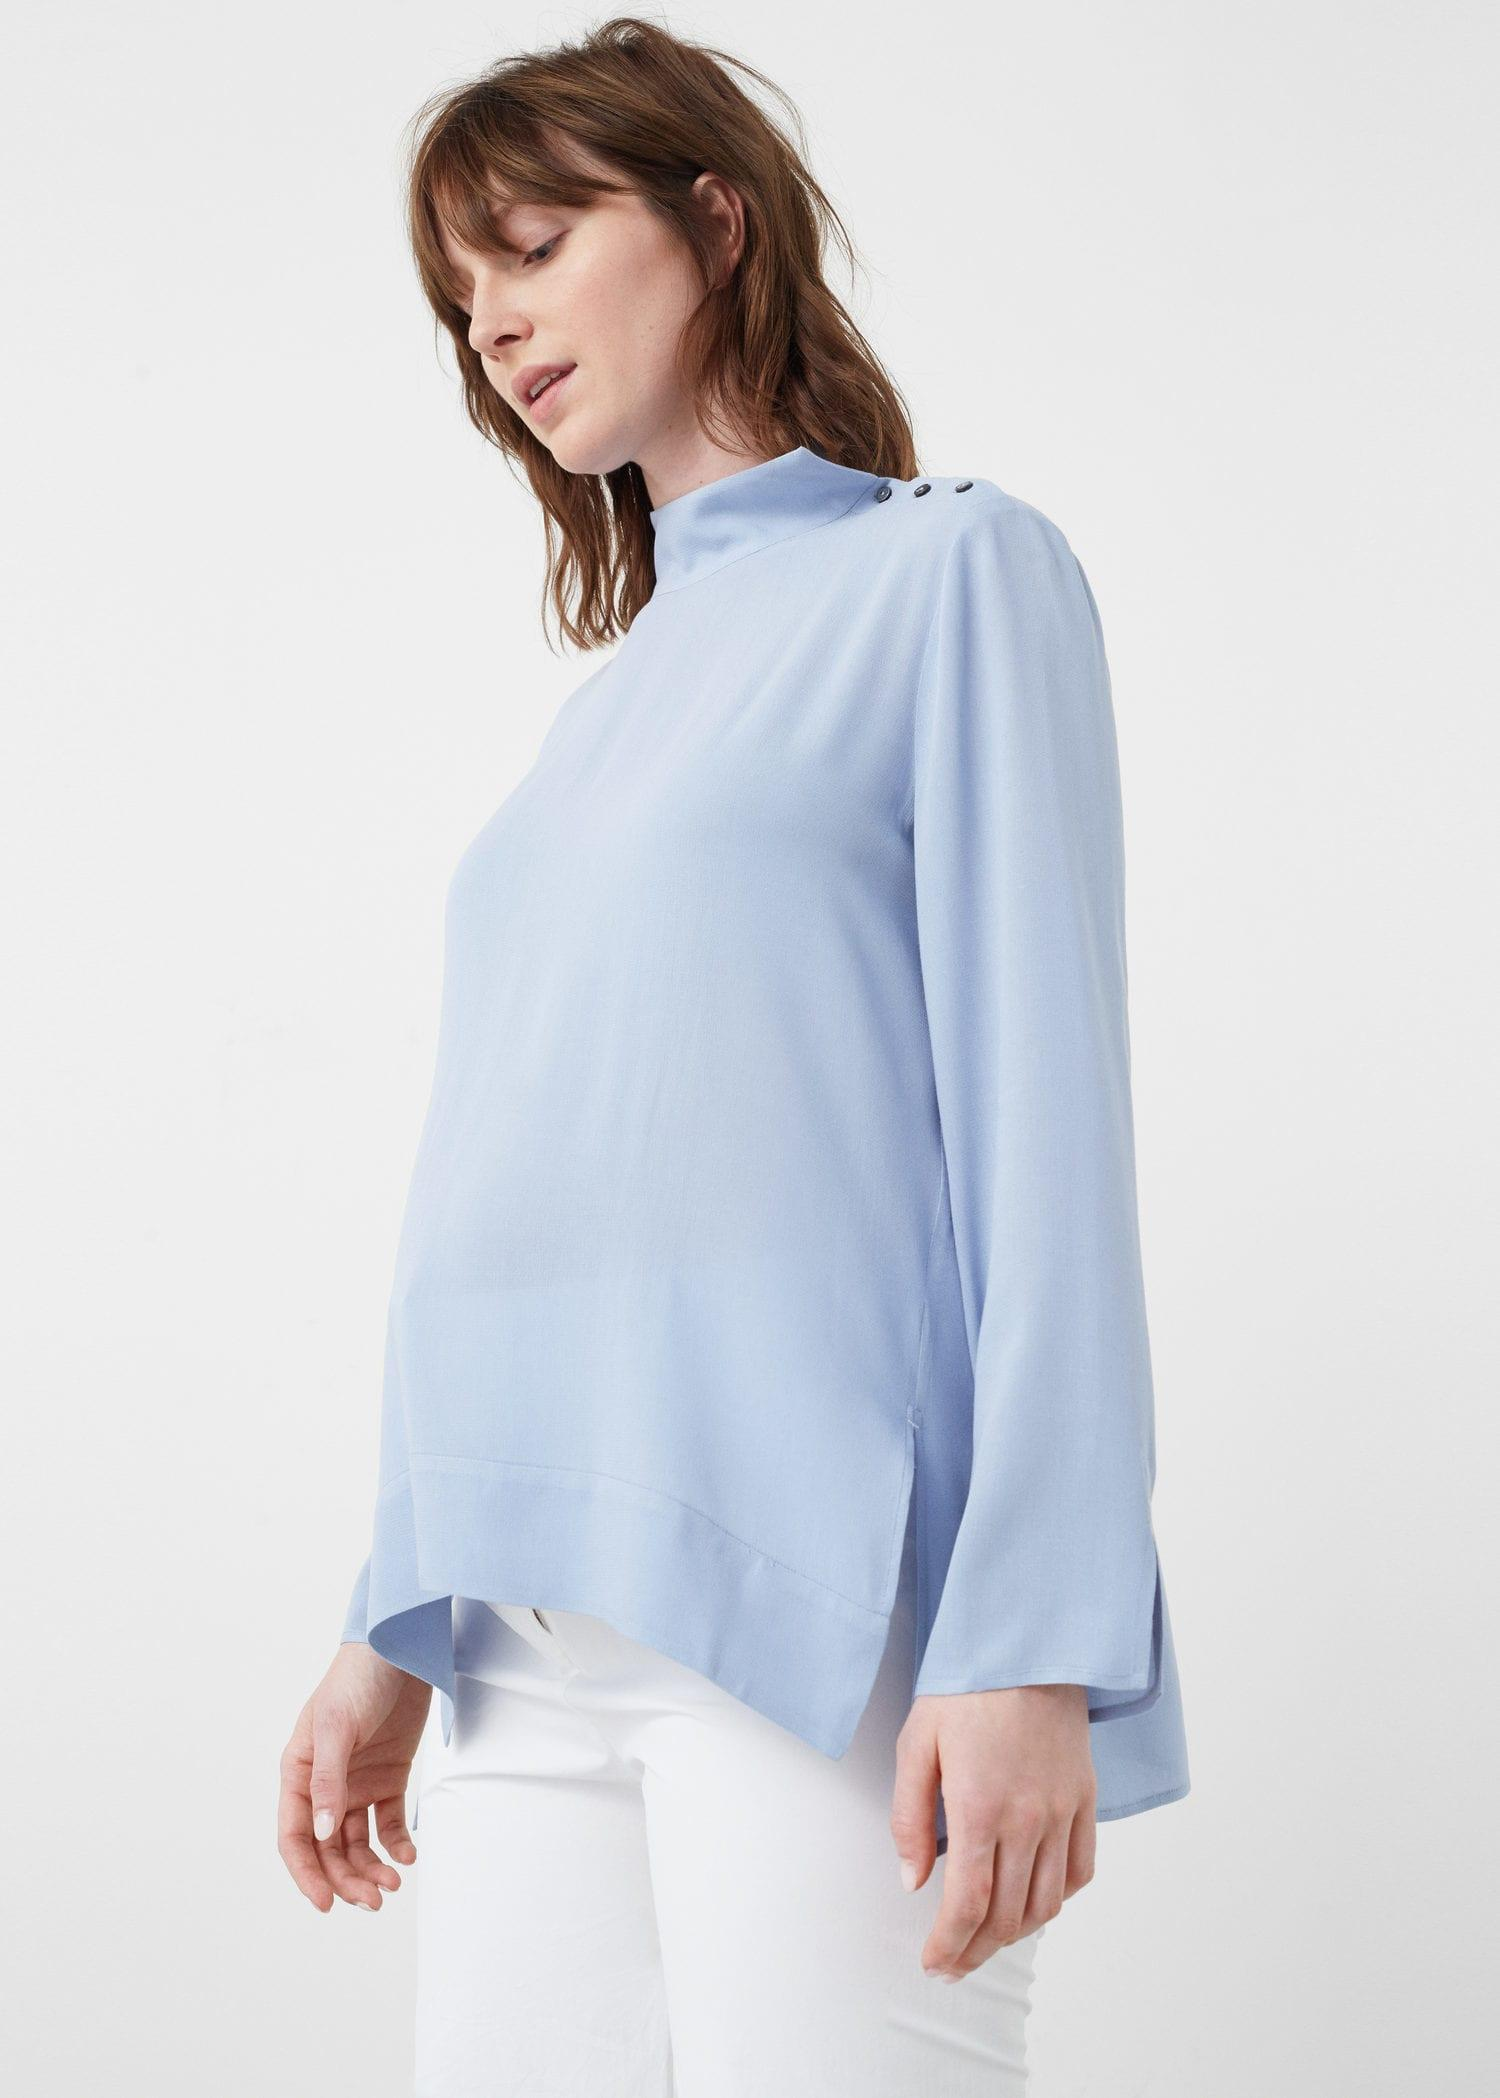 Women S Shirts And Blouses